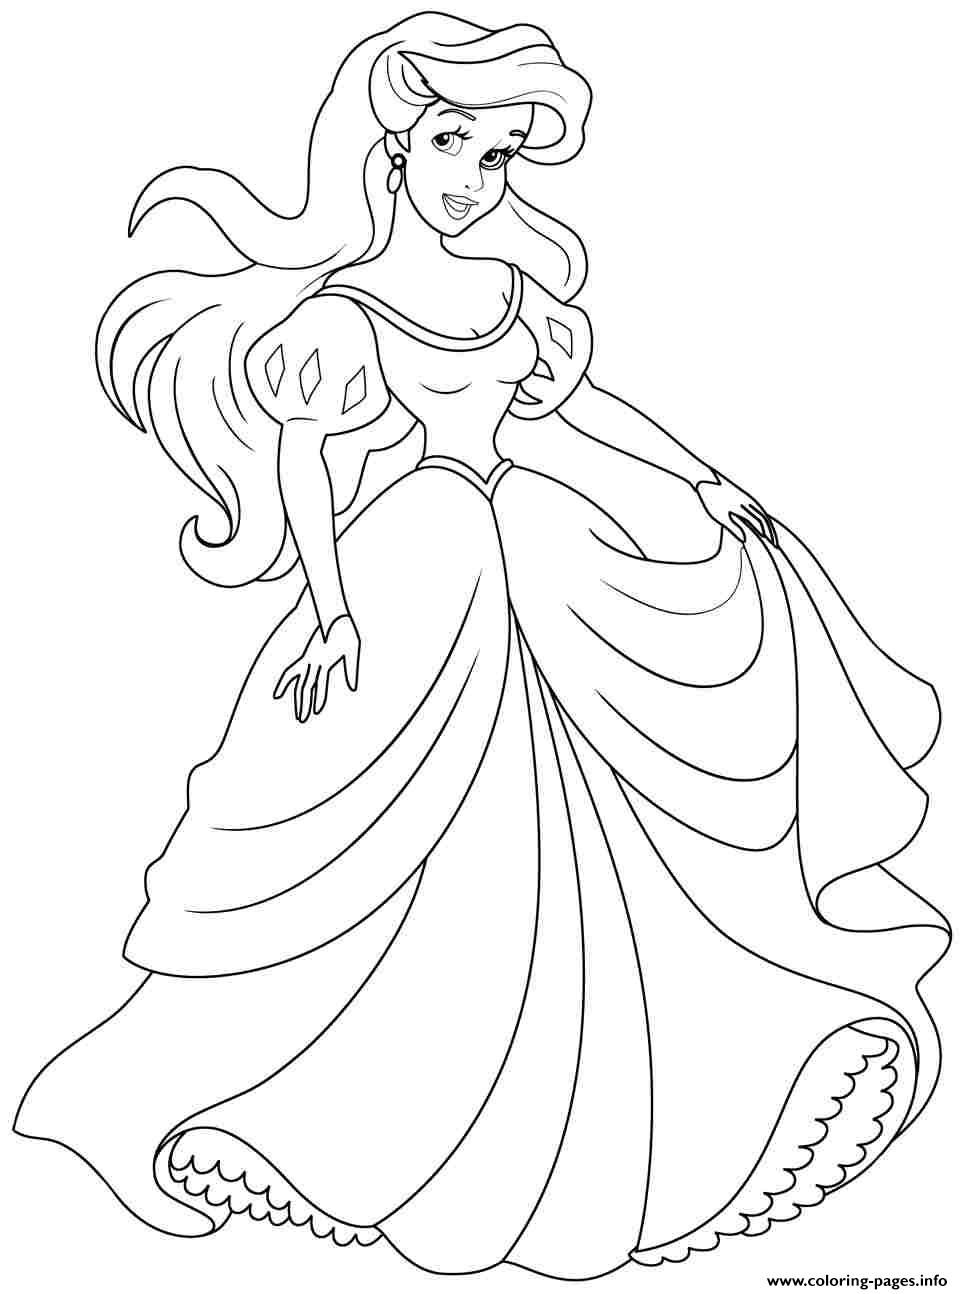 Print princess ariel human coloring pages | Disney princess ...